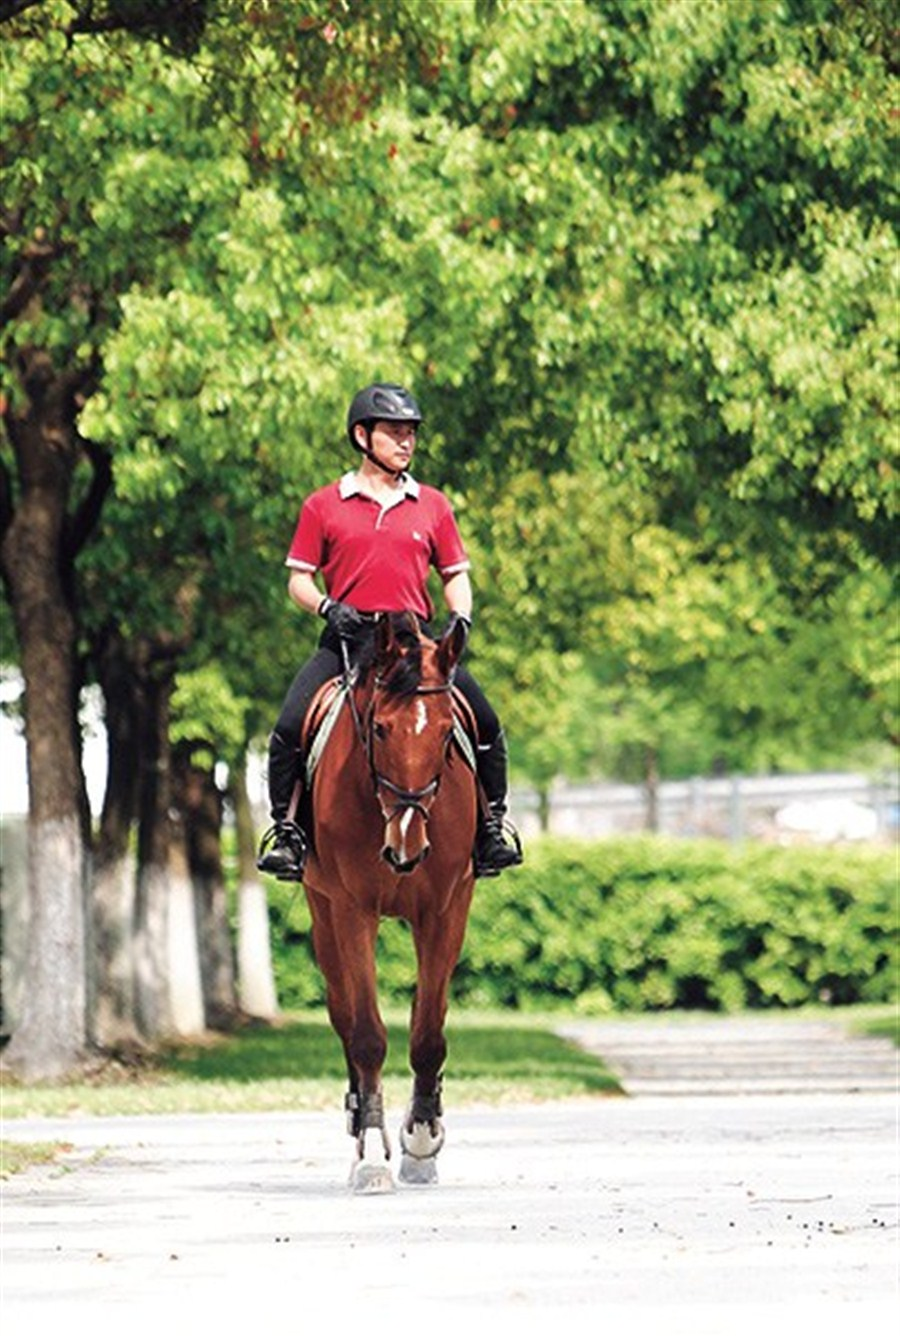 trot on over to an equestrian club shanghai daily